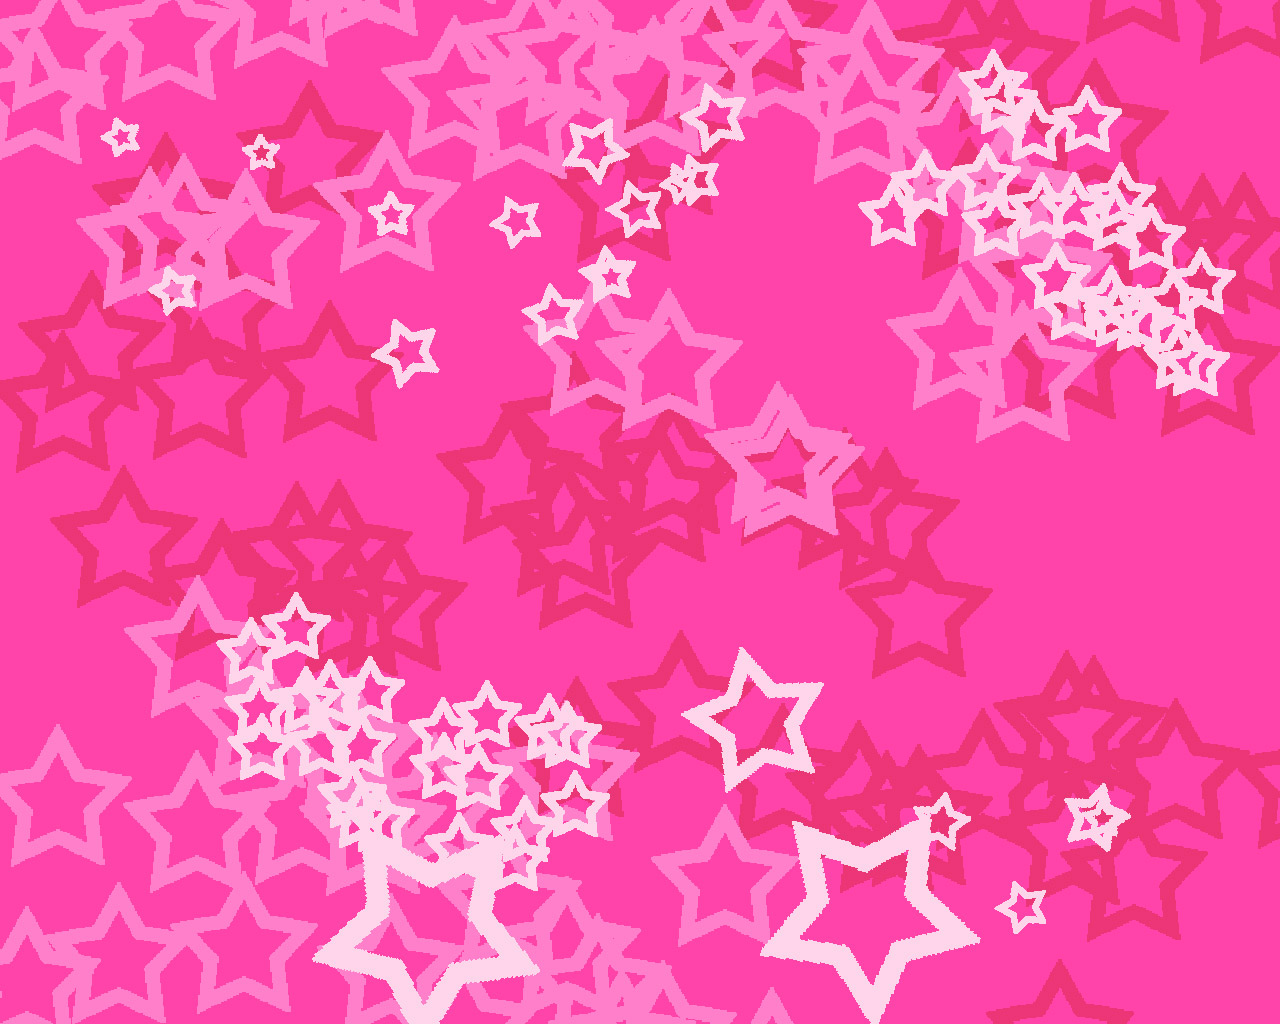 Pink Wallpapers The Free Images